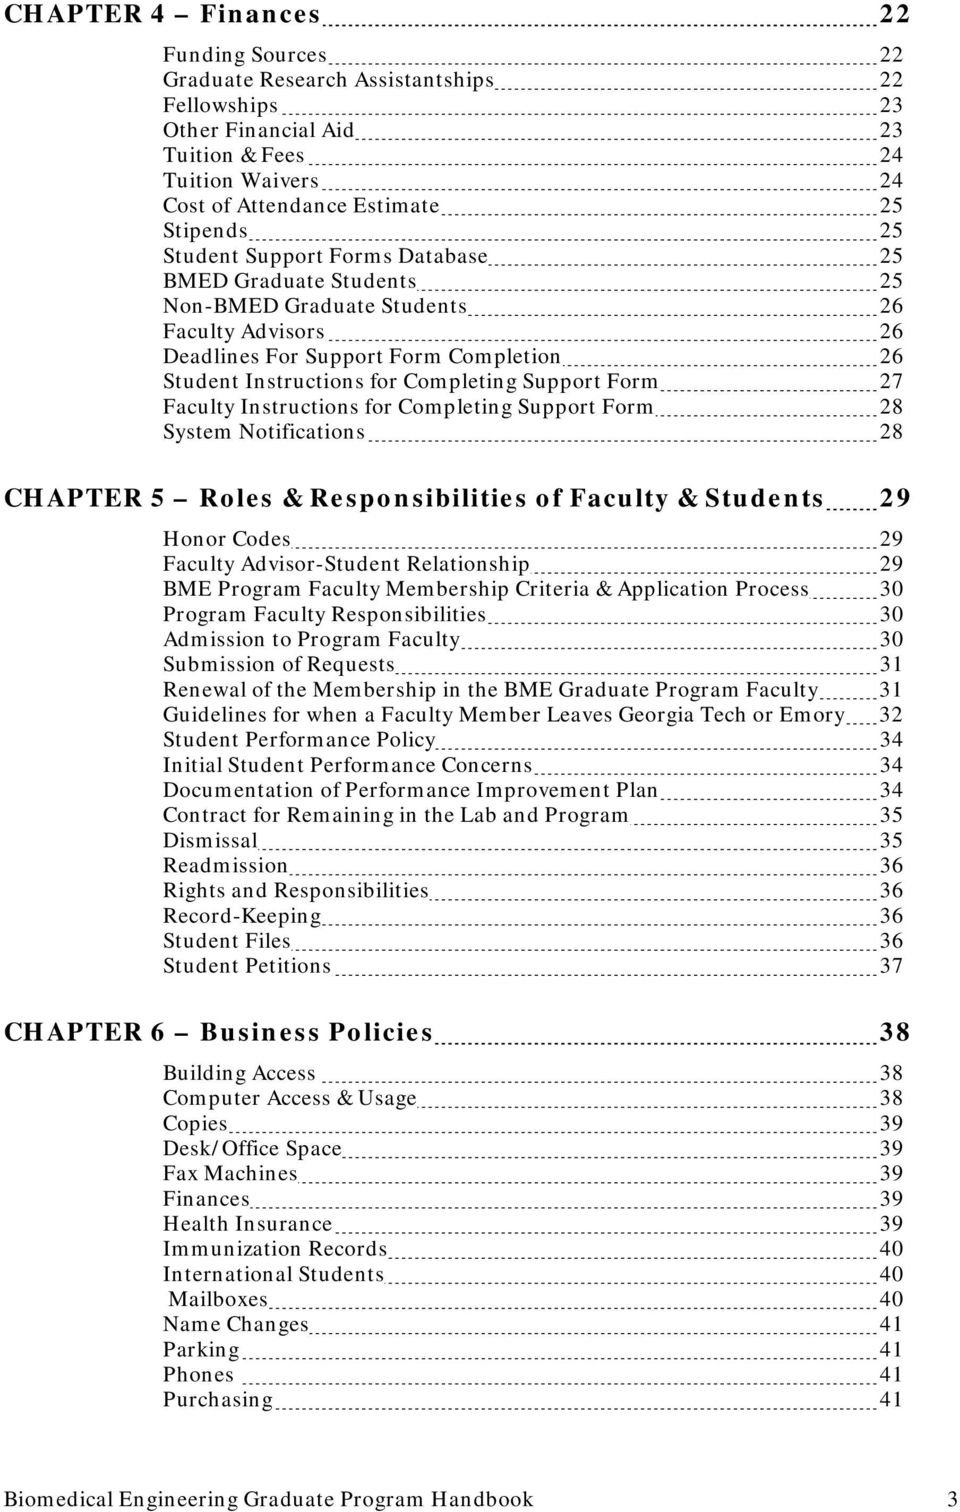 27 Faculty Instructions for Completing Support Form 28 System Notifications 28 CHAPTER 5 Roles & Responsibilities of Faculty & Students 29 Honor Codes 29 Faculty Advisor-Student Relationship 29 BME